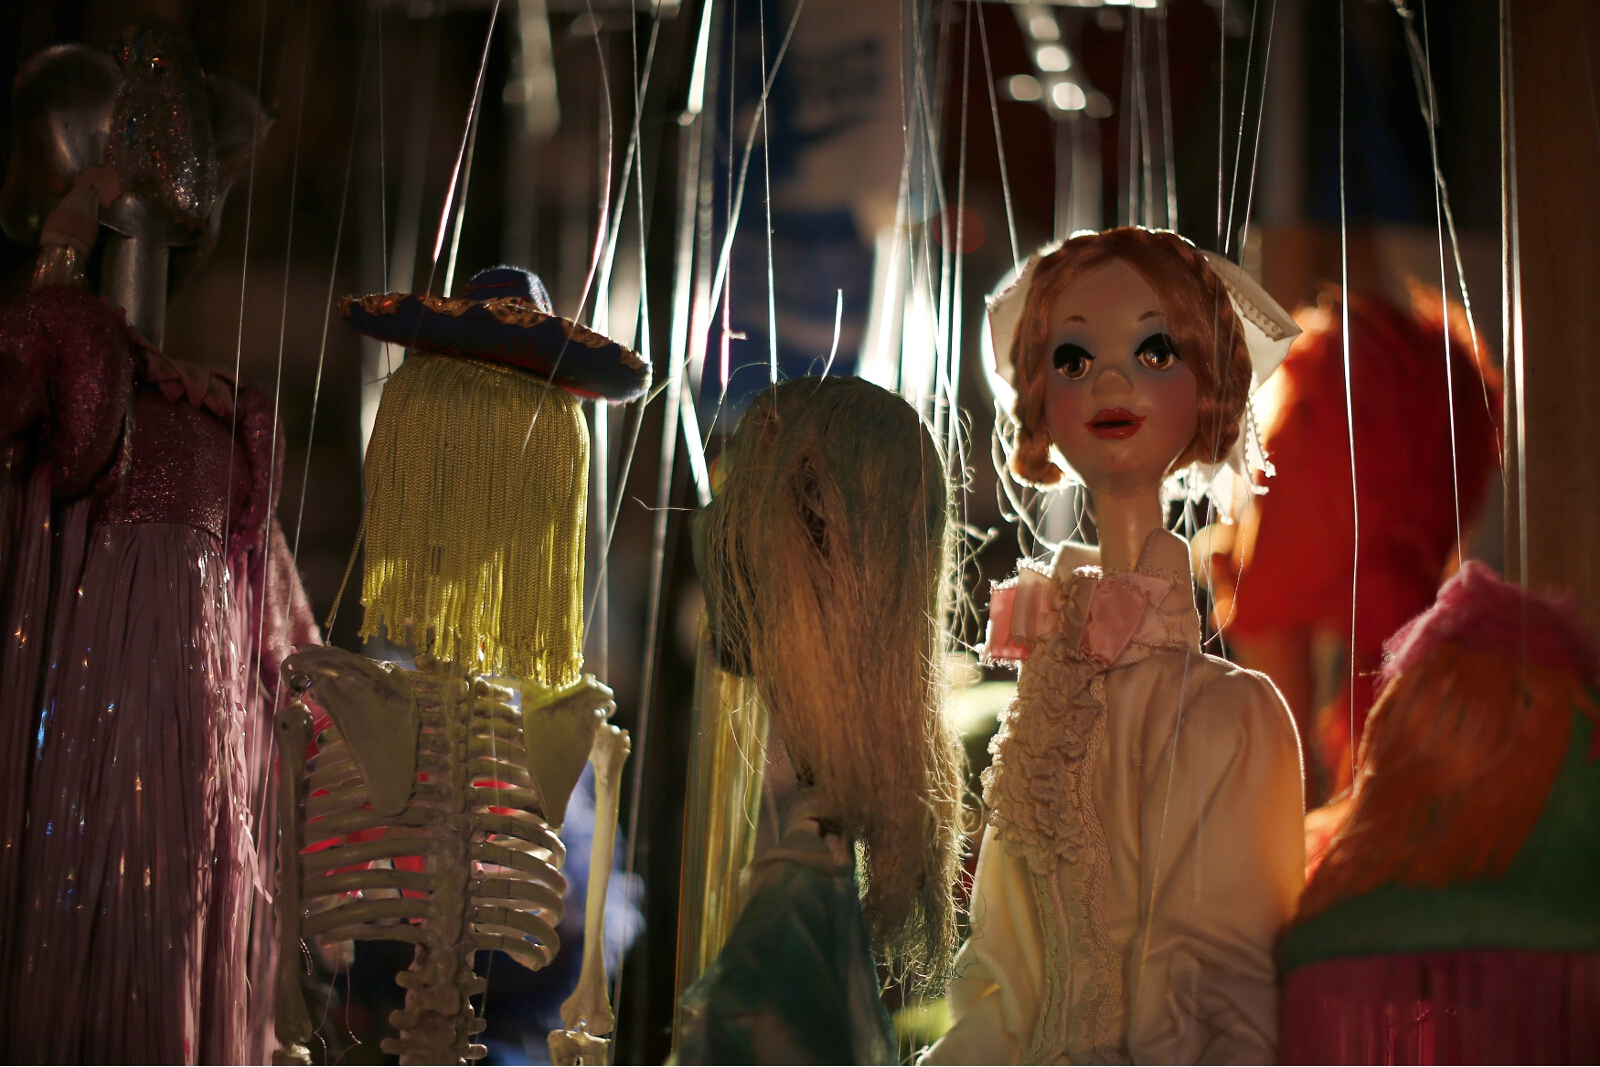 marionette-theater-closure-09